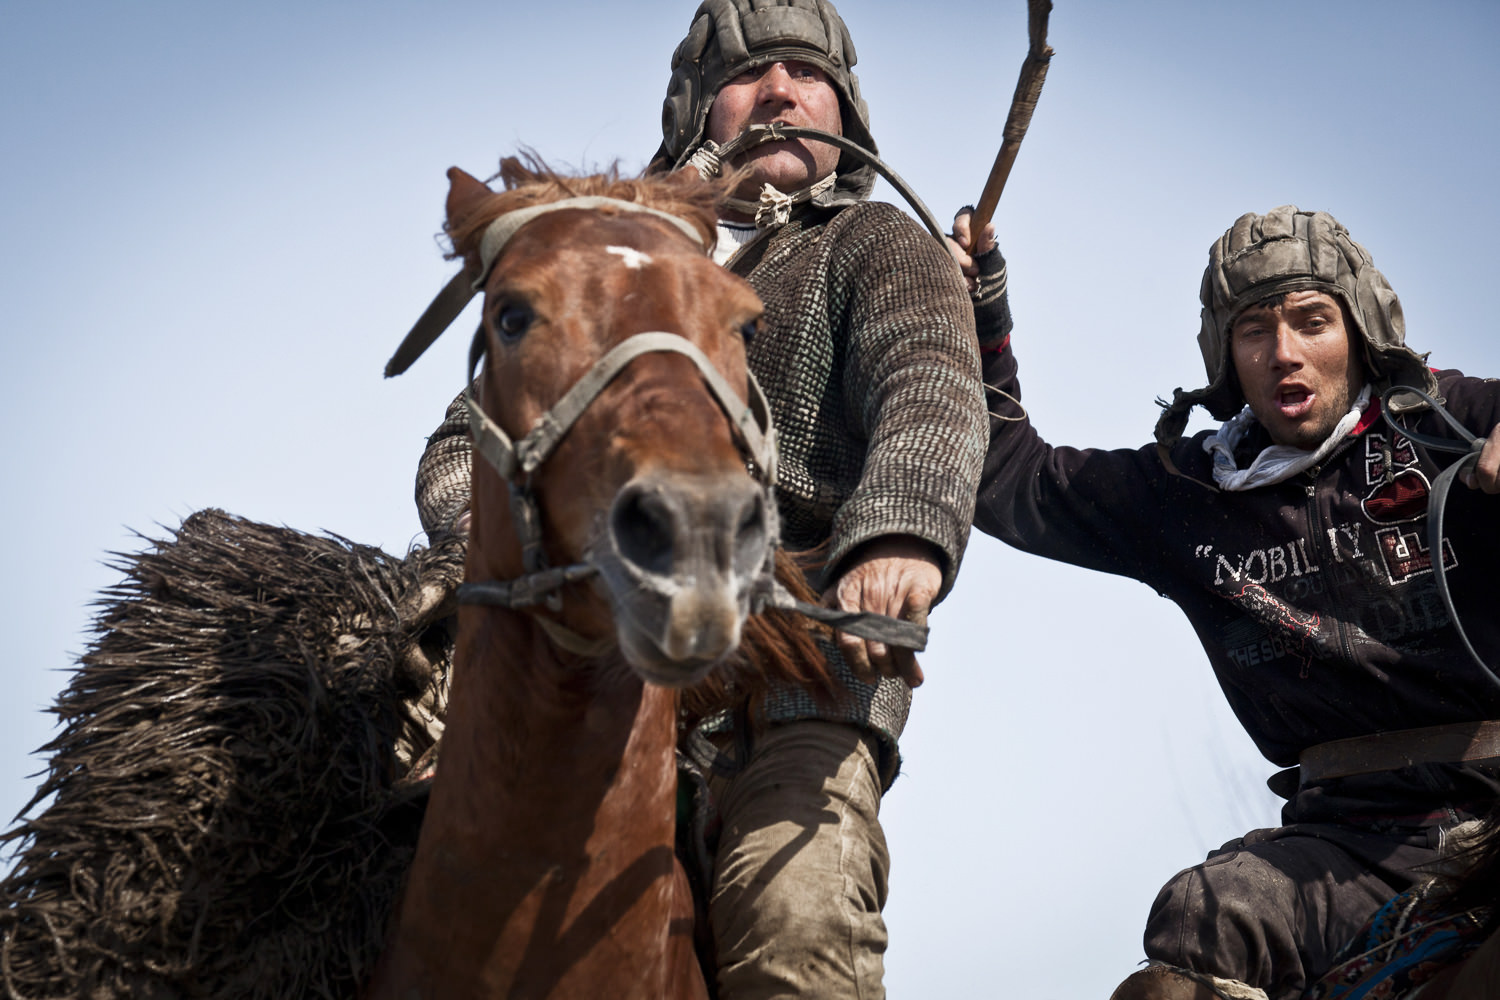 A buzkashi rider escapes from a rival with the prize.  Popular throughout much of Central Asia, buzkashi is a form of horse polo in which horseback players wrestle a goat carcass across a playing field.